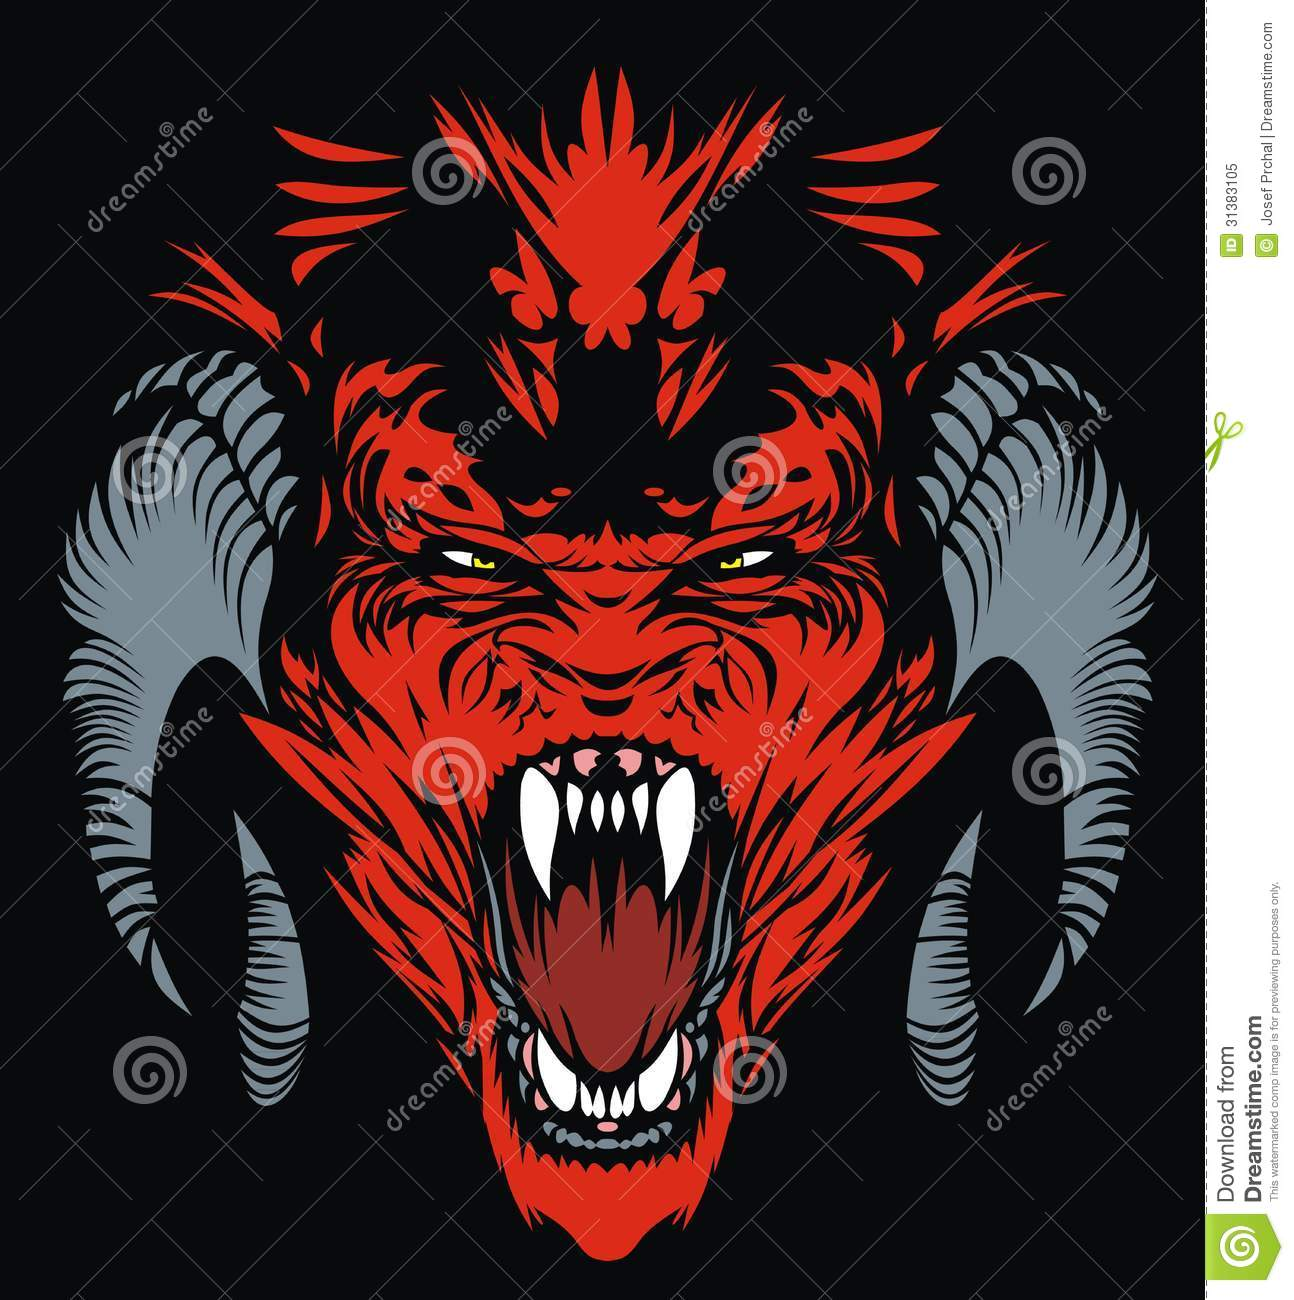 red devil royalty free stock photo image 31383105